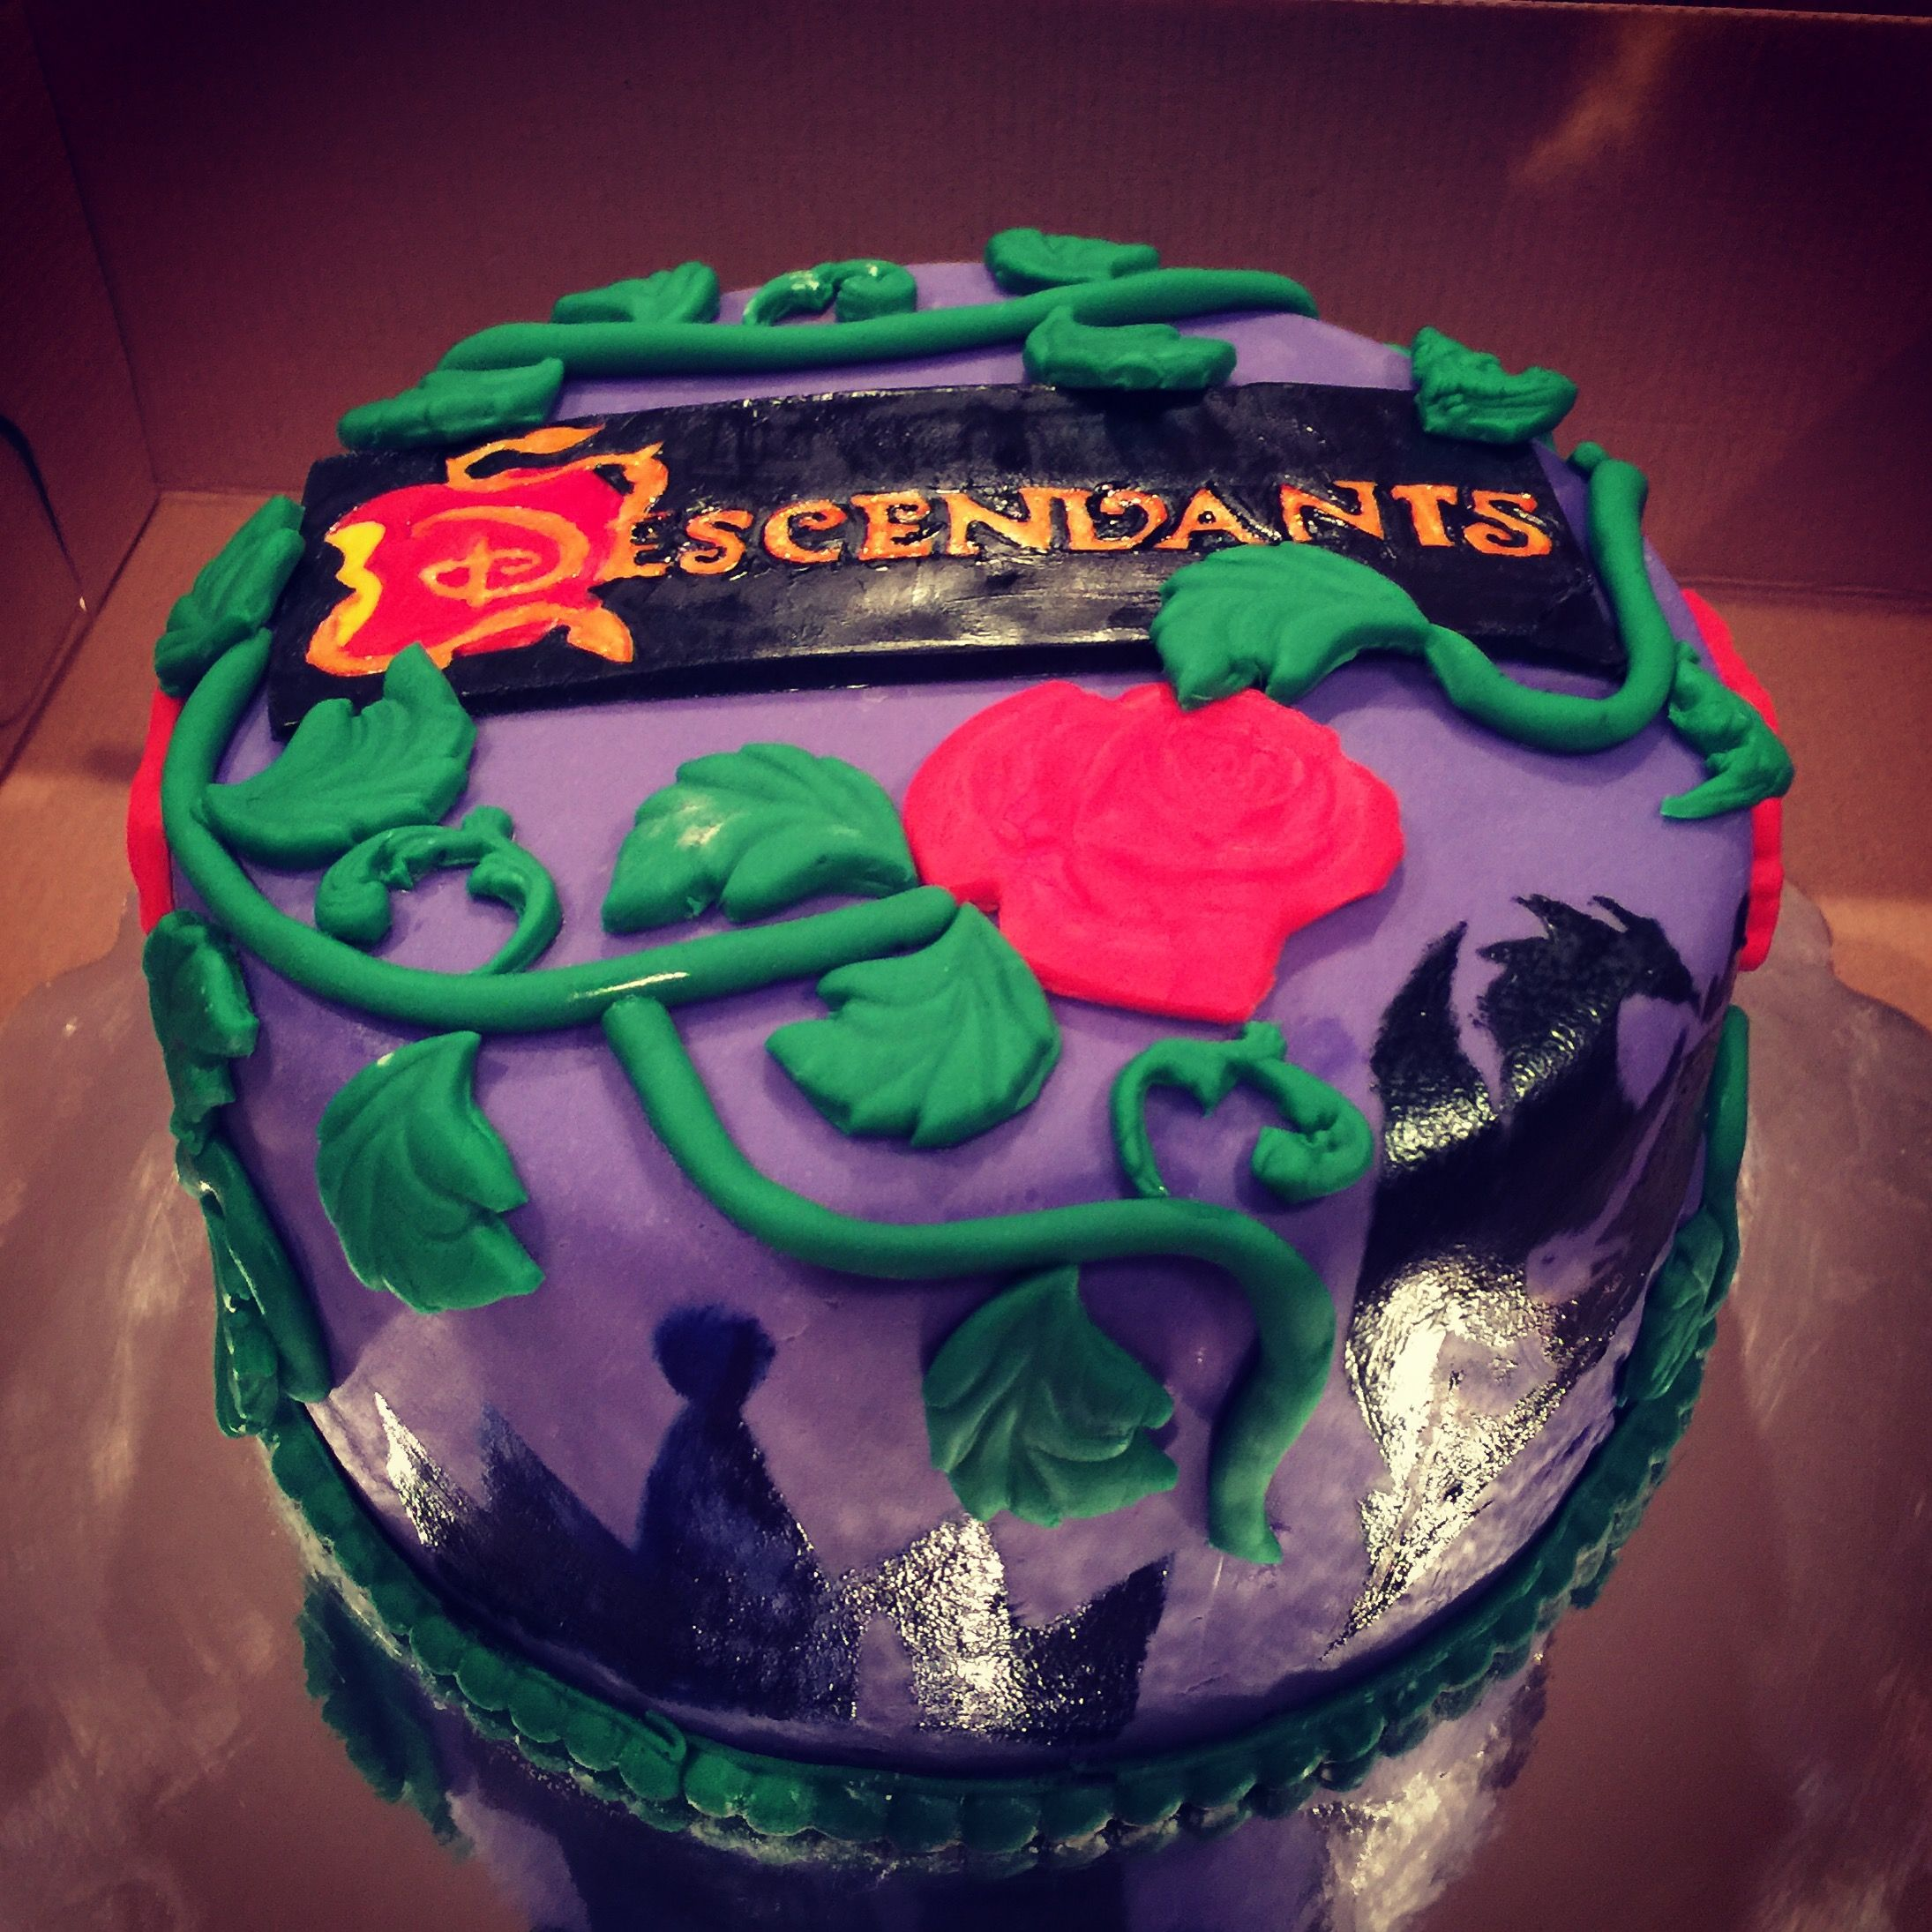 How To Have A Wickedly Evil Descendants Party Part 1 Cakes